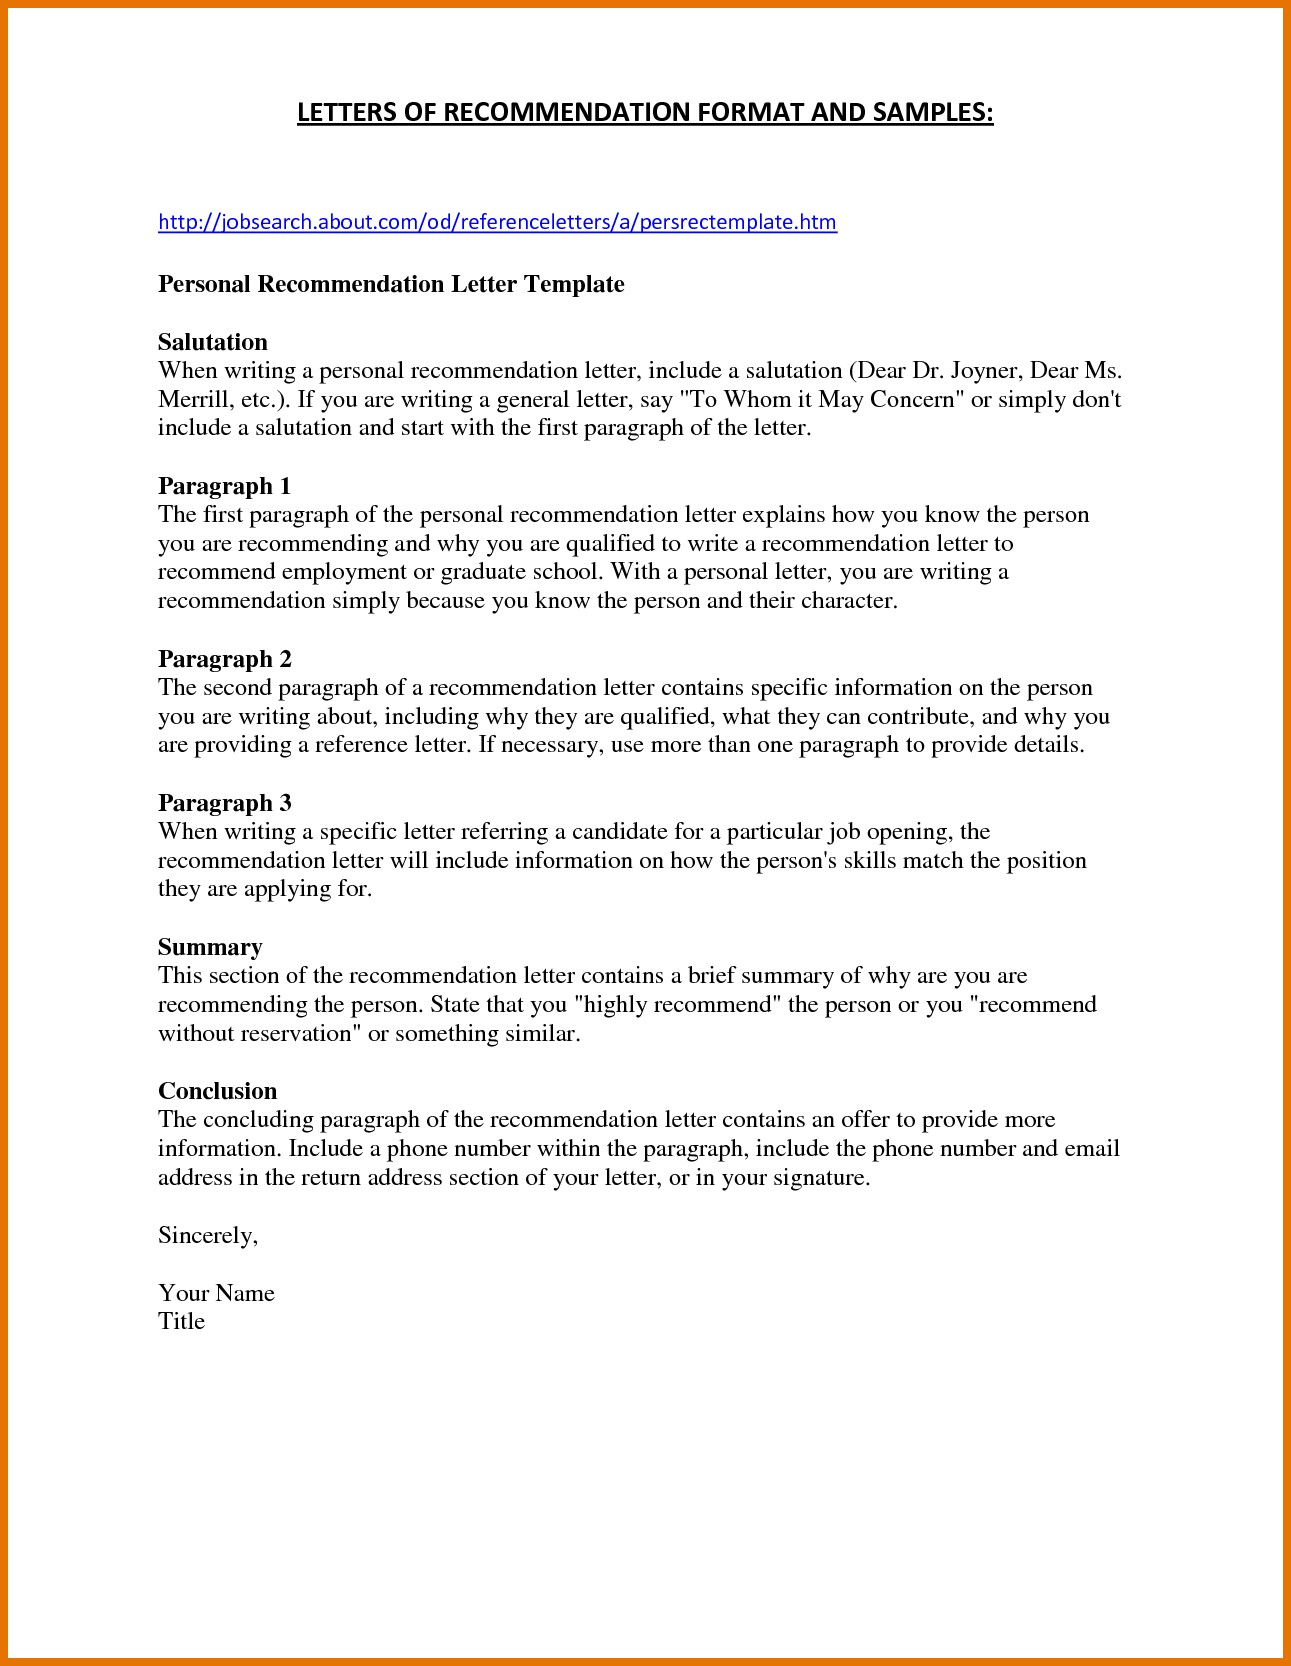 Pension Letter Template - Australian Business Letter Template Fresh Reference Letter Template